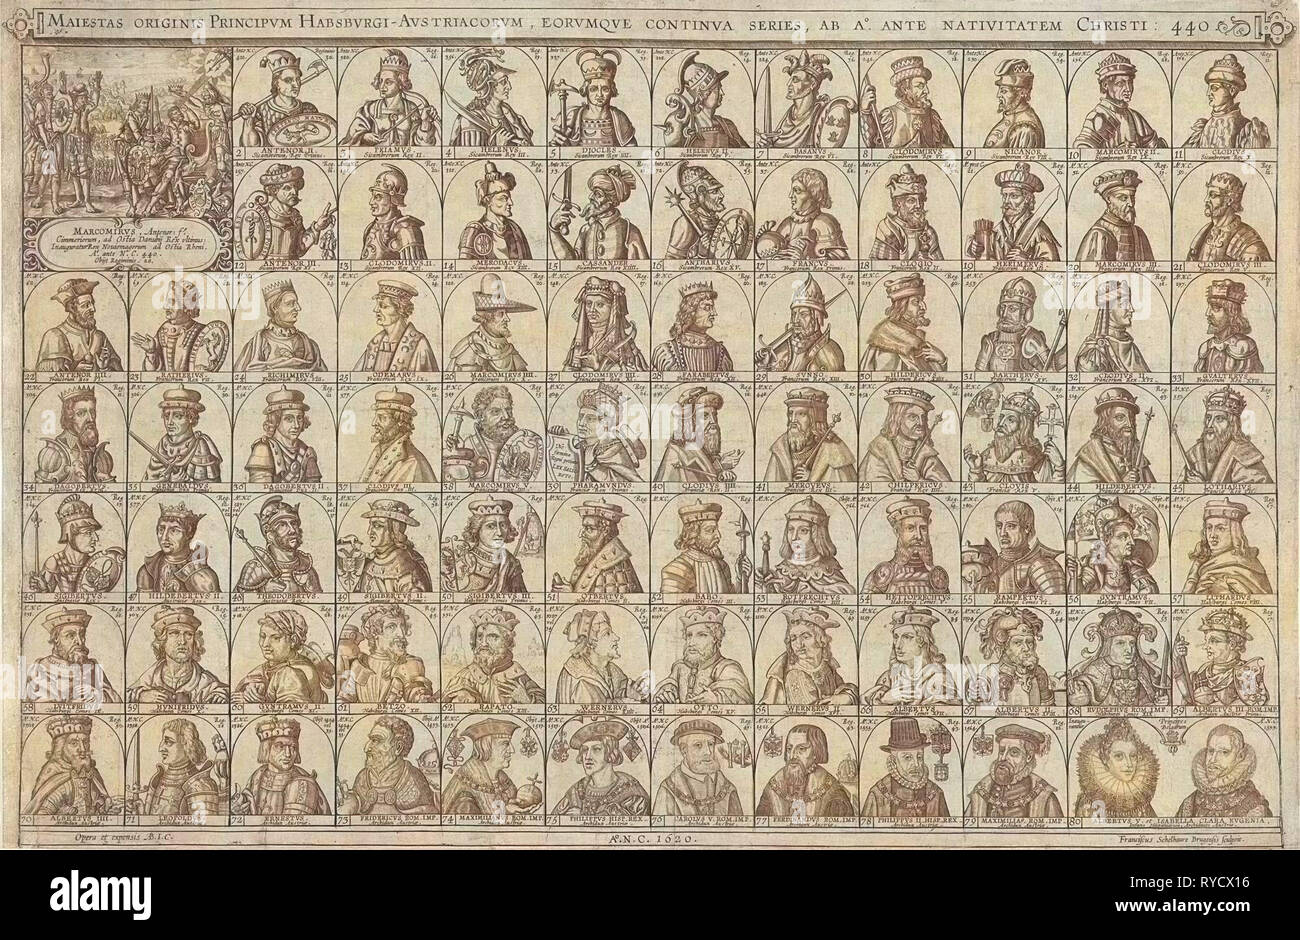 Portraits of princes of the House of Habsburg, print maker: Franciscus Schelhauer, 1620 - Stock Image